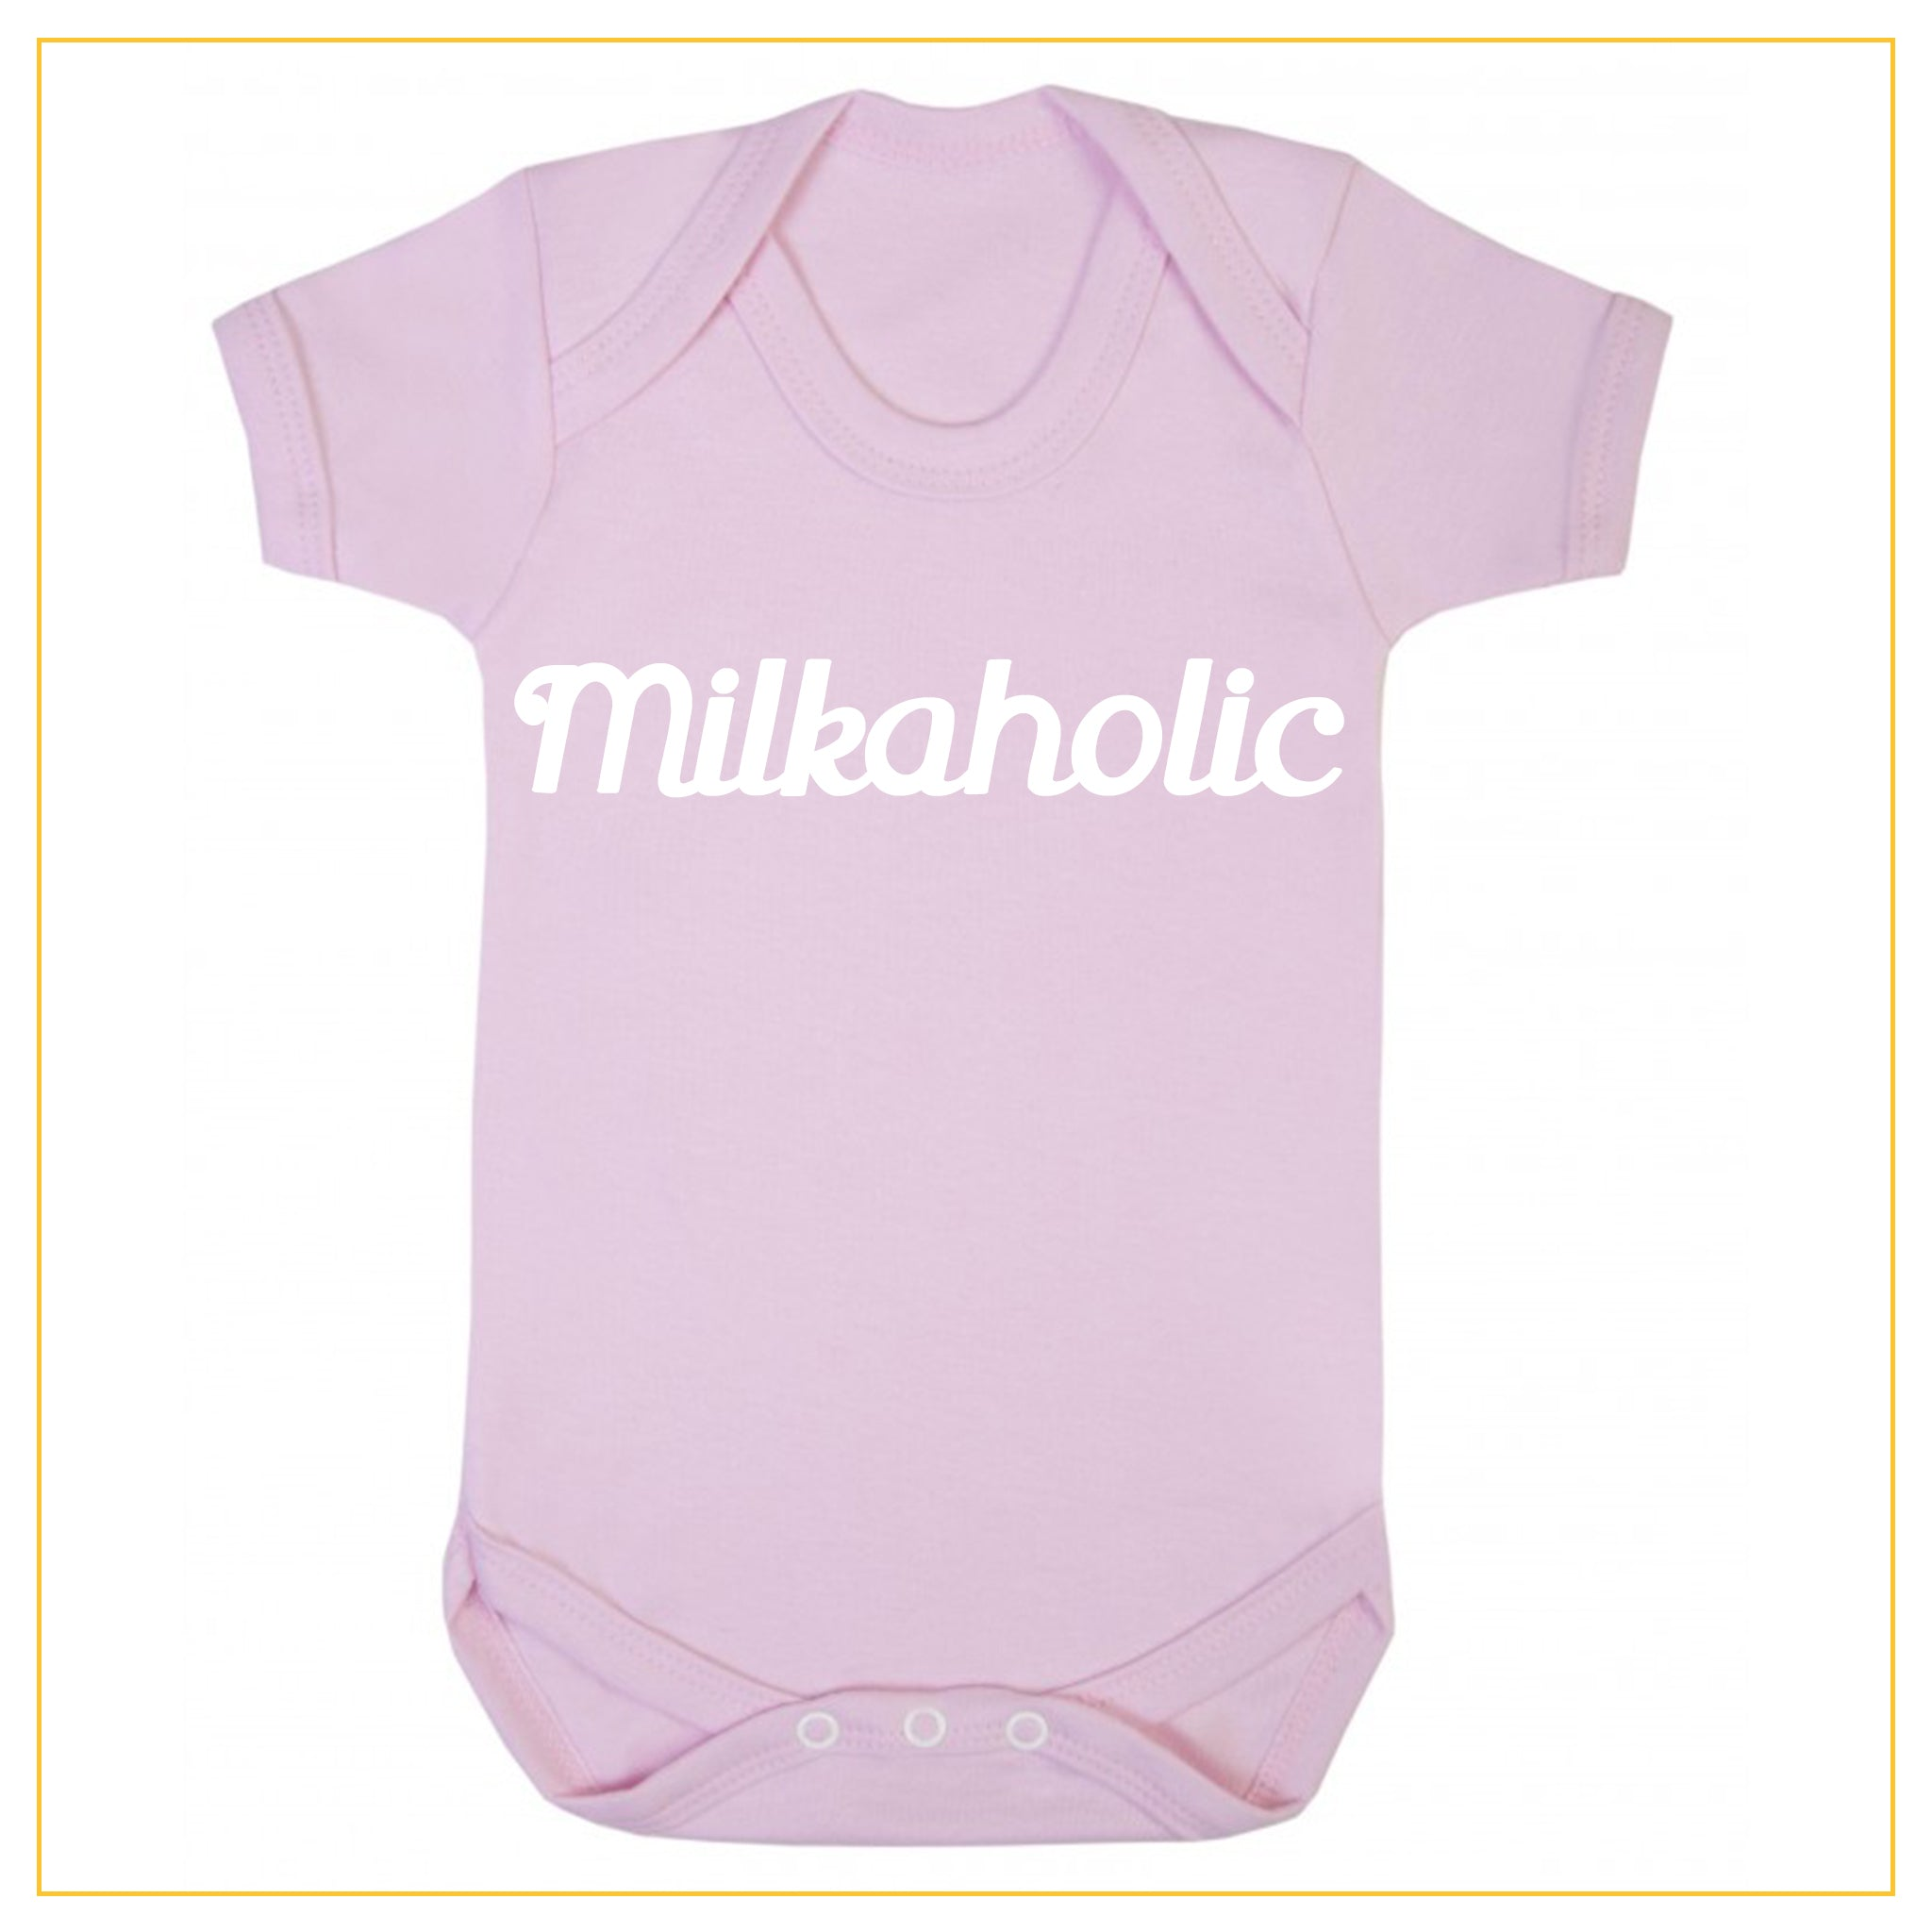 milkaholic novelty baby onesie in dust pink